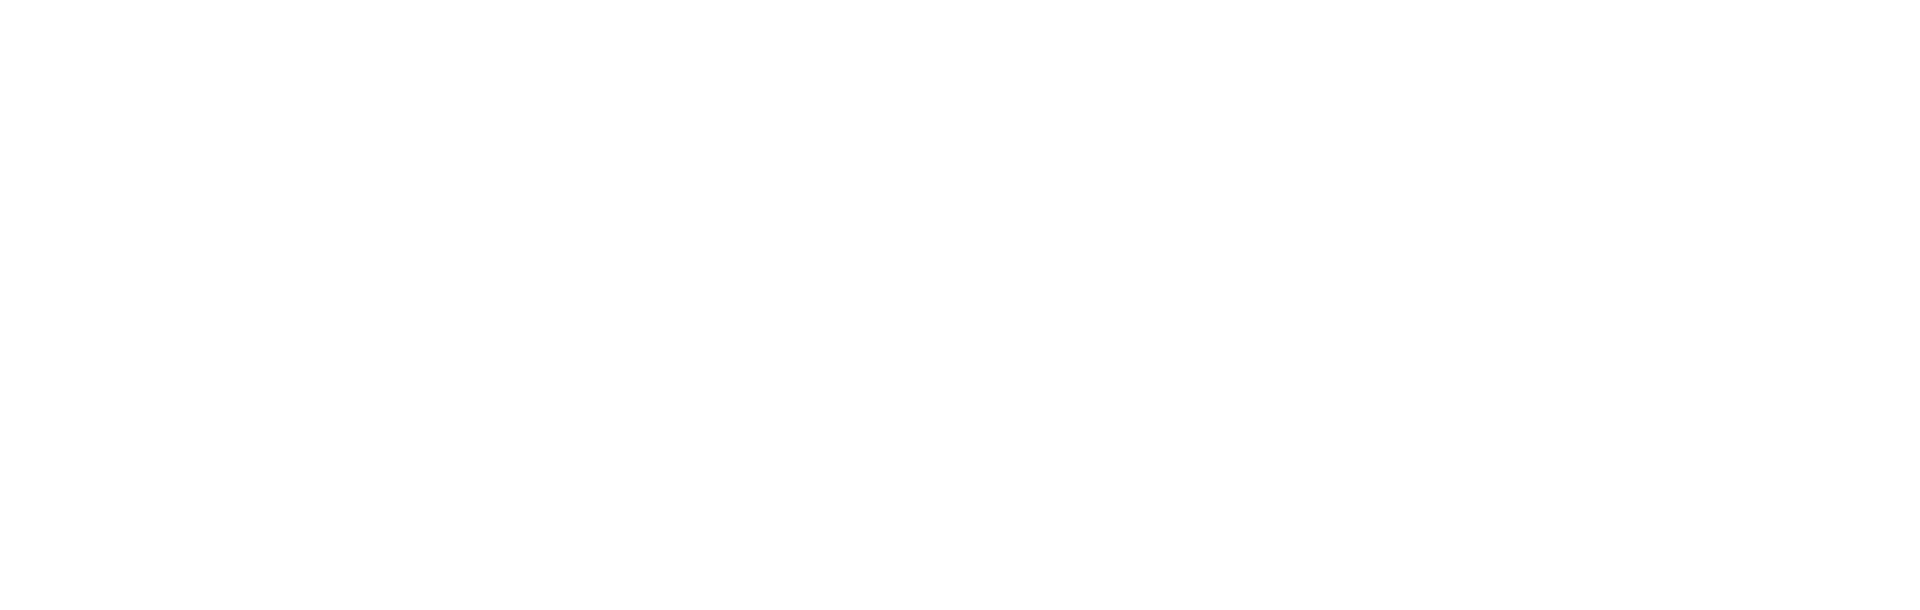 Synchrony Health Services: Pursing Clinical Excellence, Together